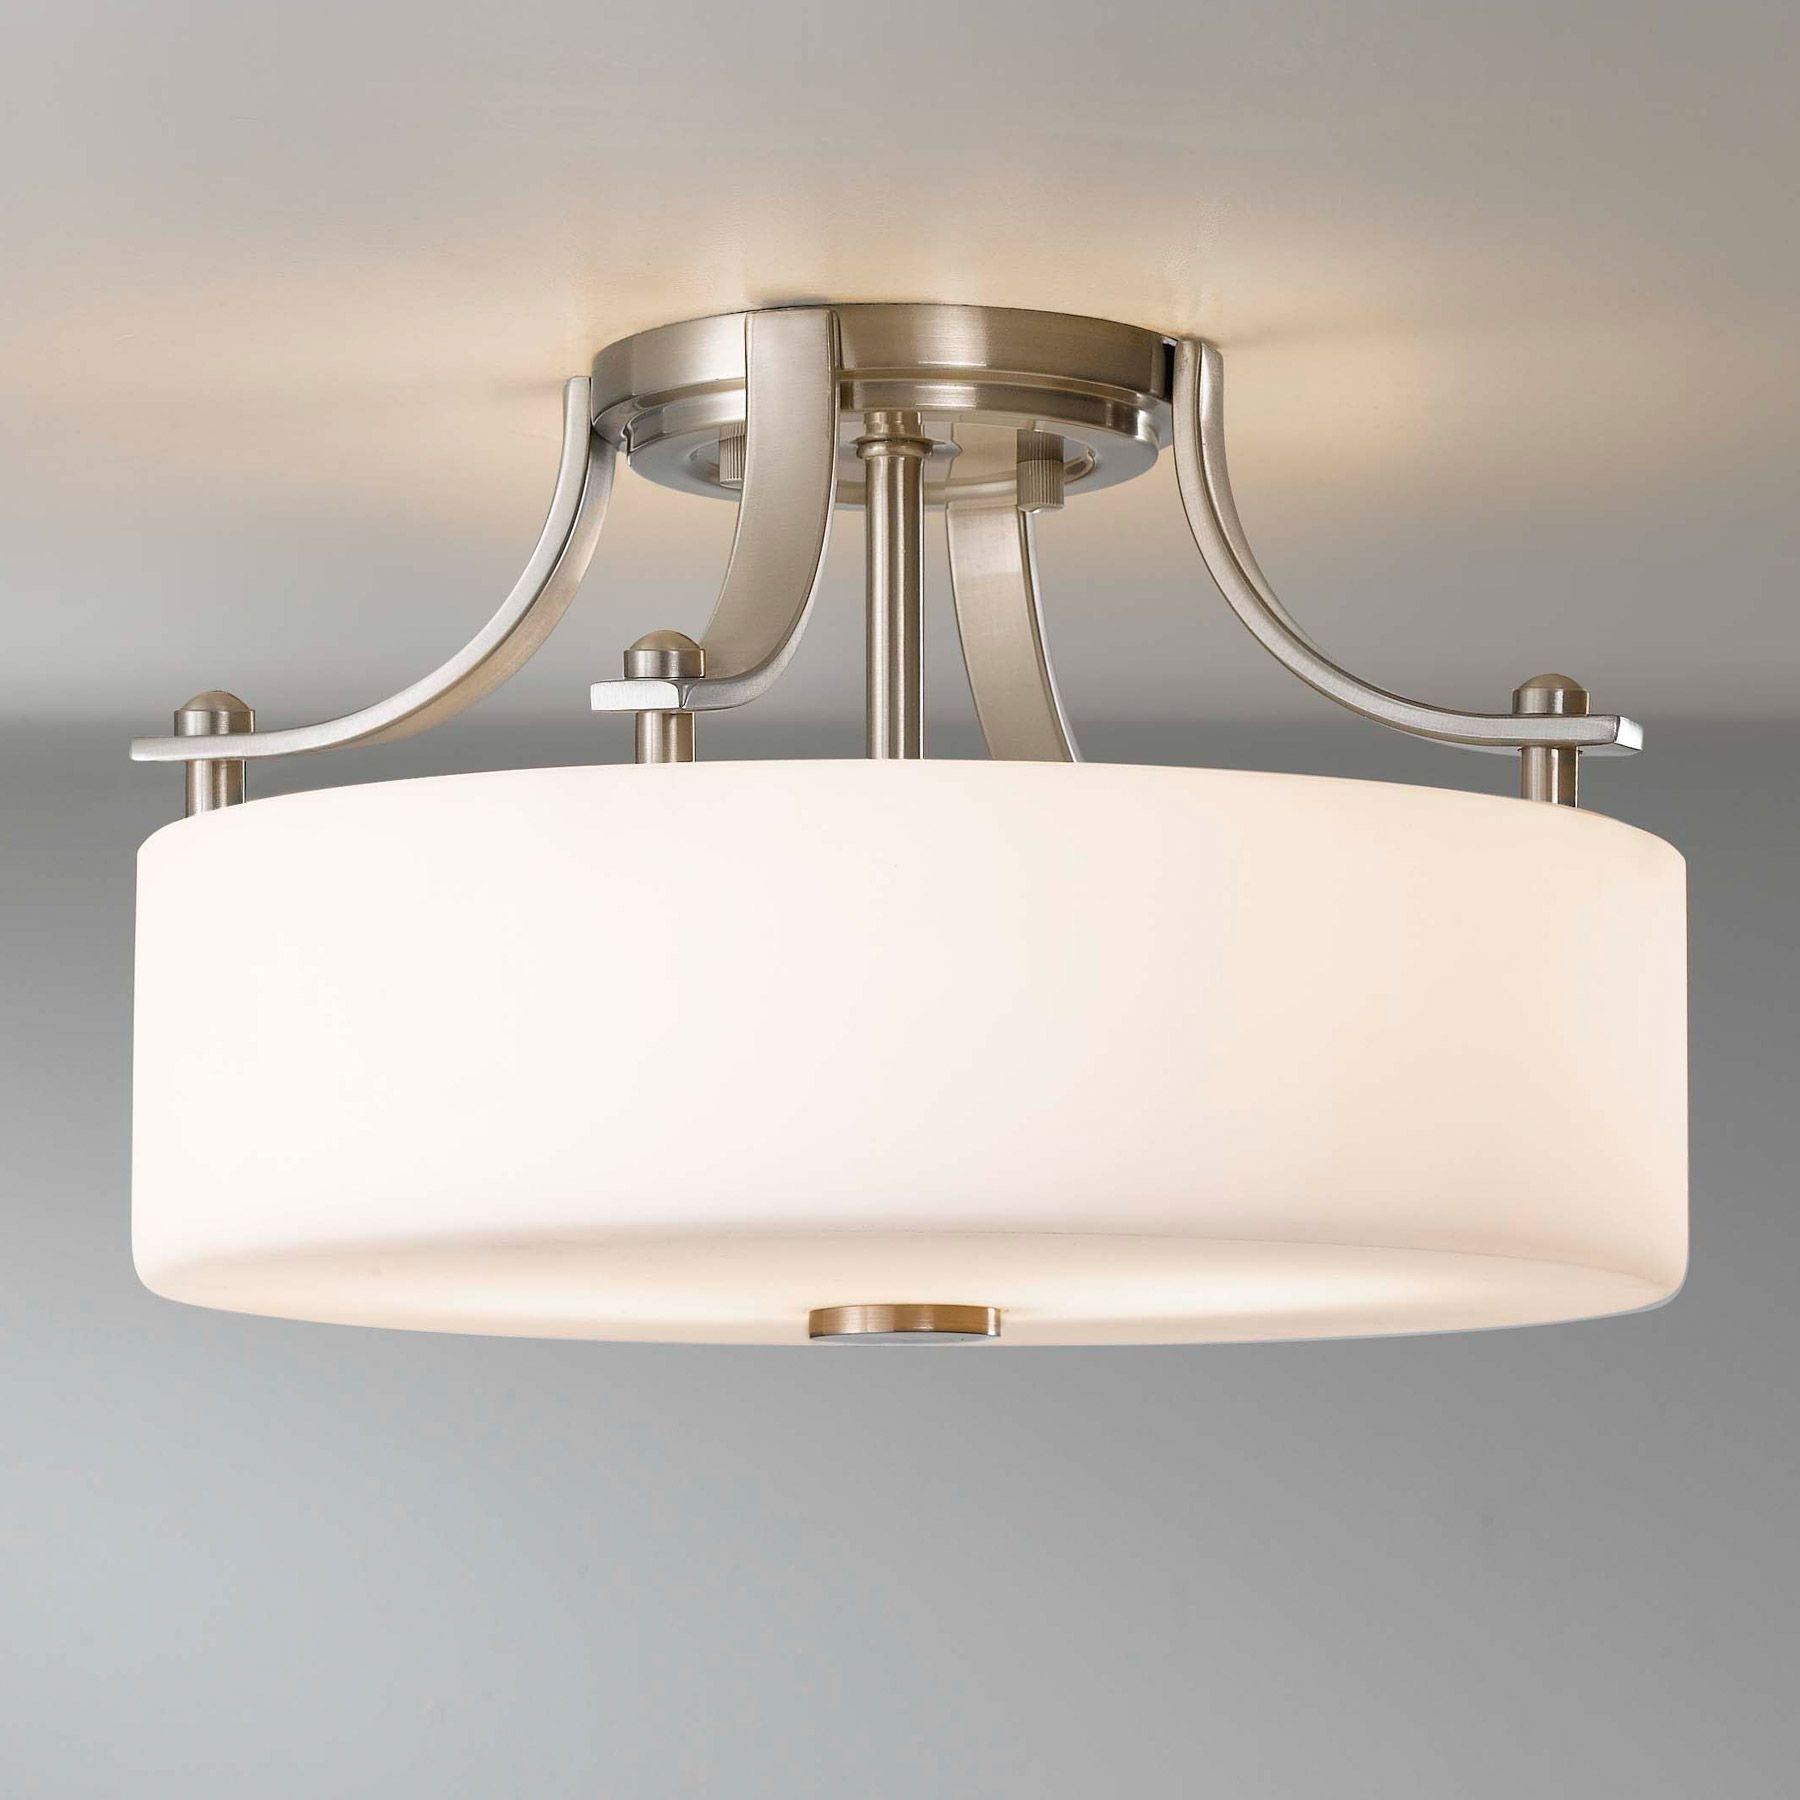 Flush Mount Kitchen Ceiling Light Fixtures White Flushmount Light Fixture Flush Mount Ceiling Light